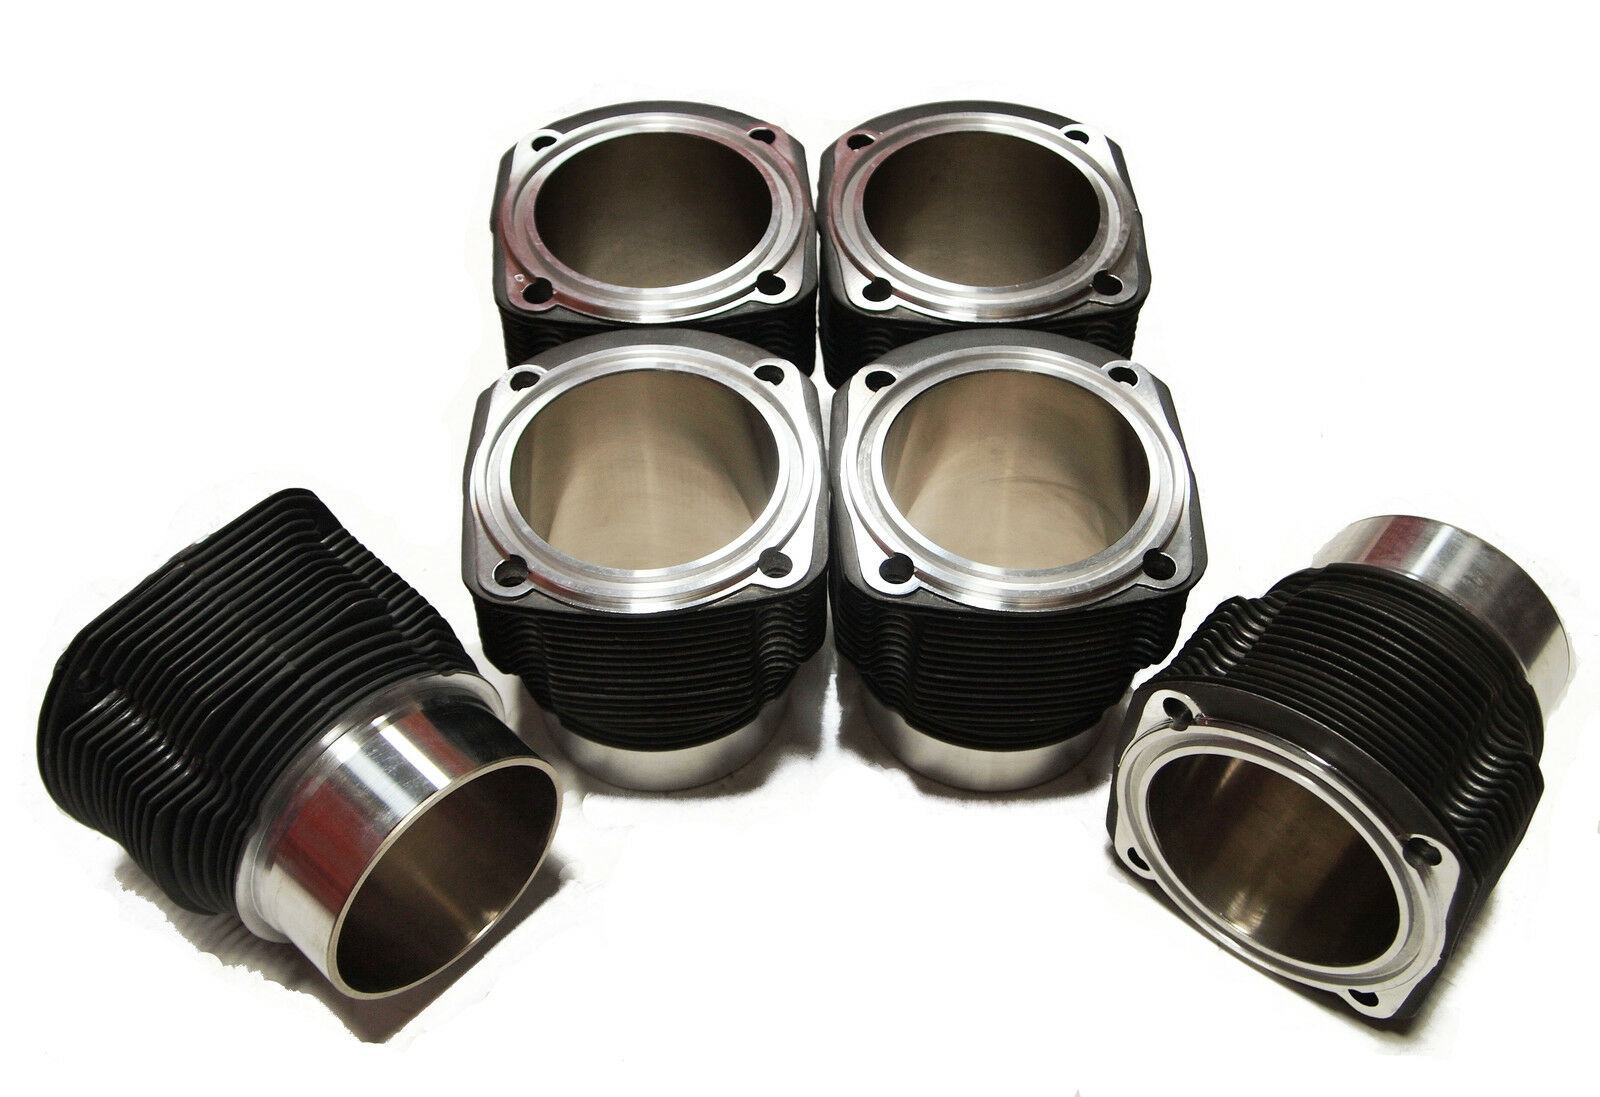 QSC Porsche 911 84mm Aluminum Nikasil Coated Cylinders Set | eBay